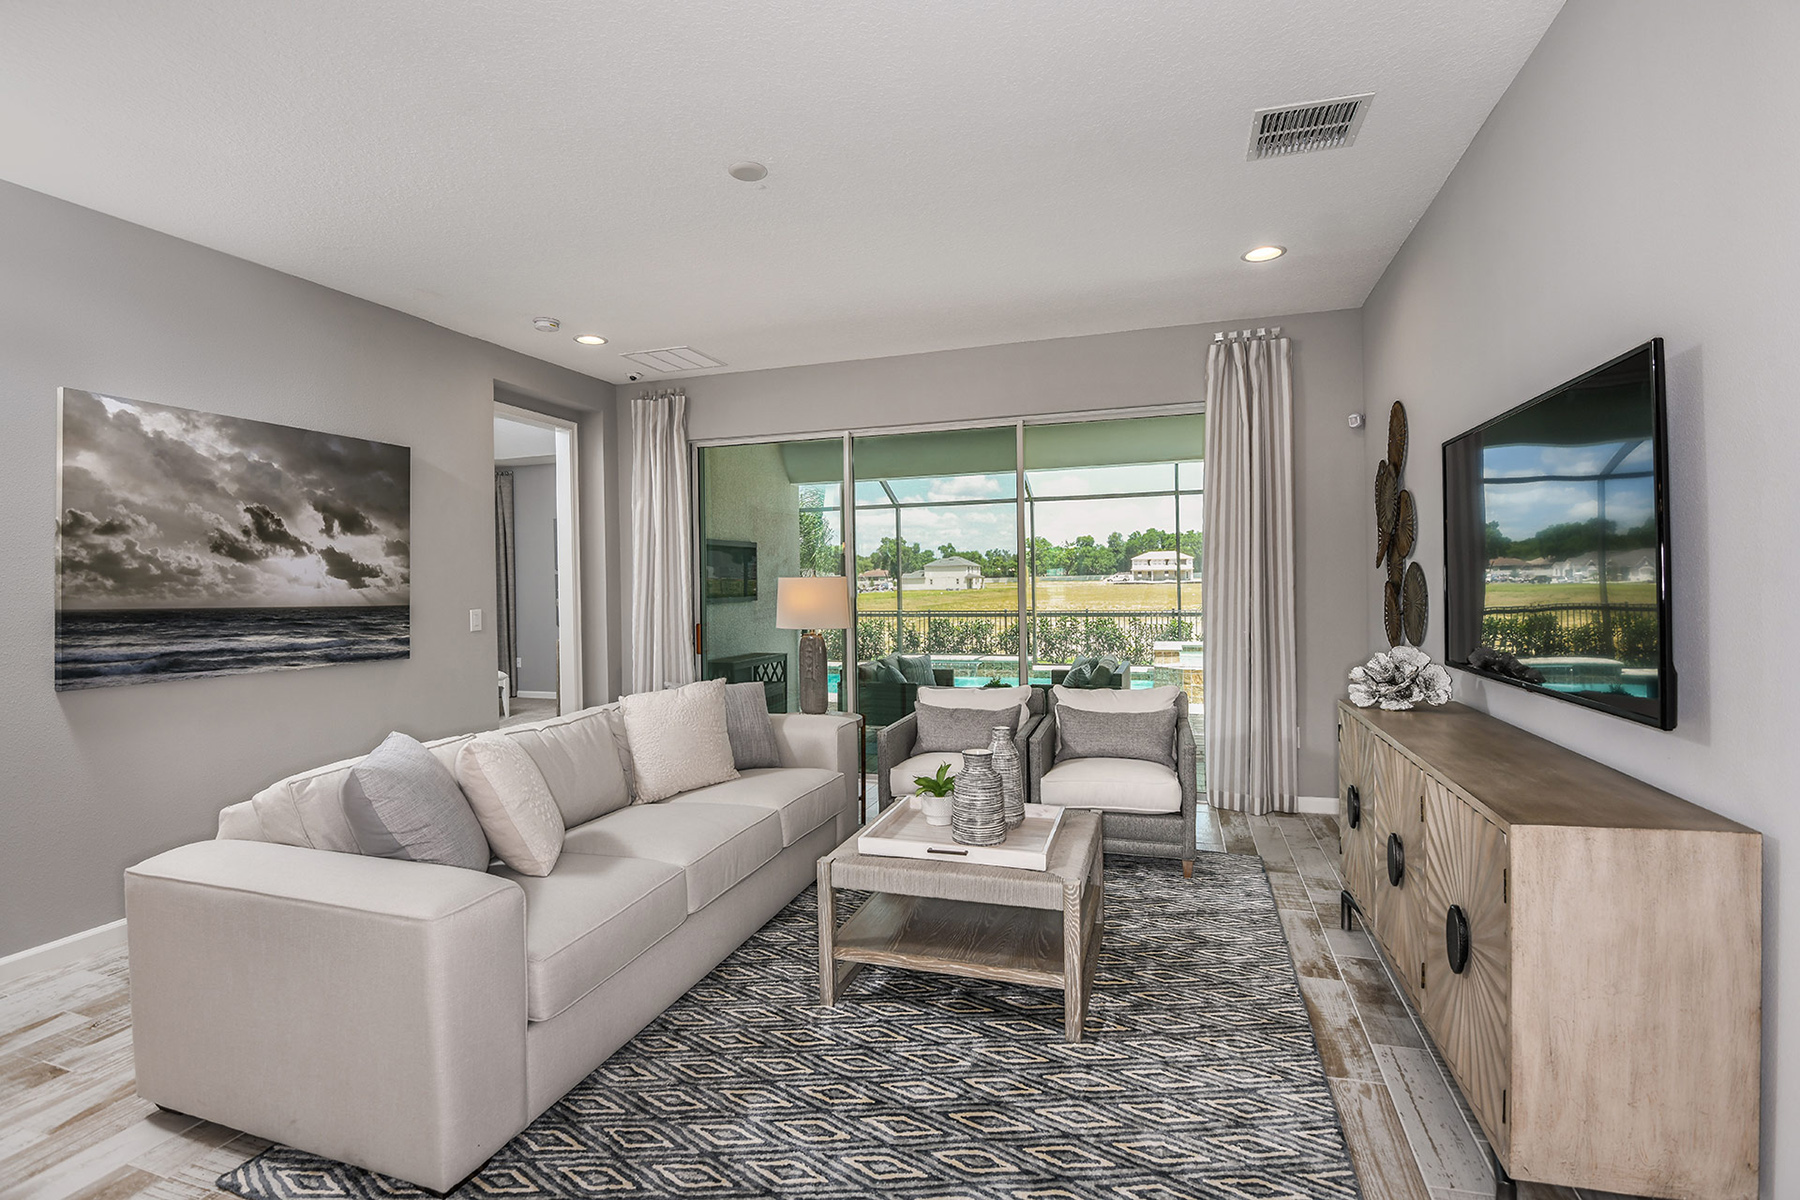 Coquina II Plan Greatroom at Compass Landing in Naples Florida by Mattamy Homes